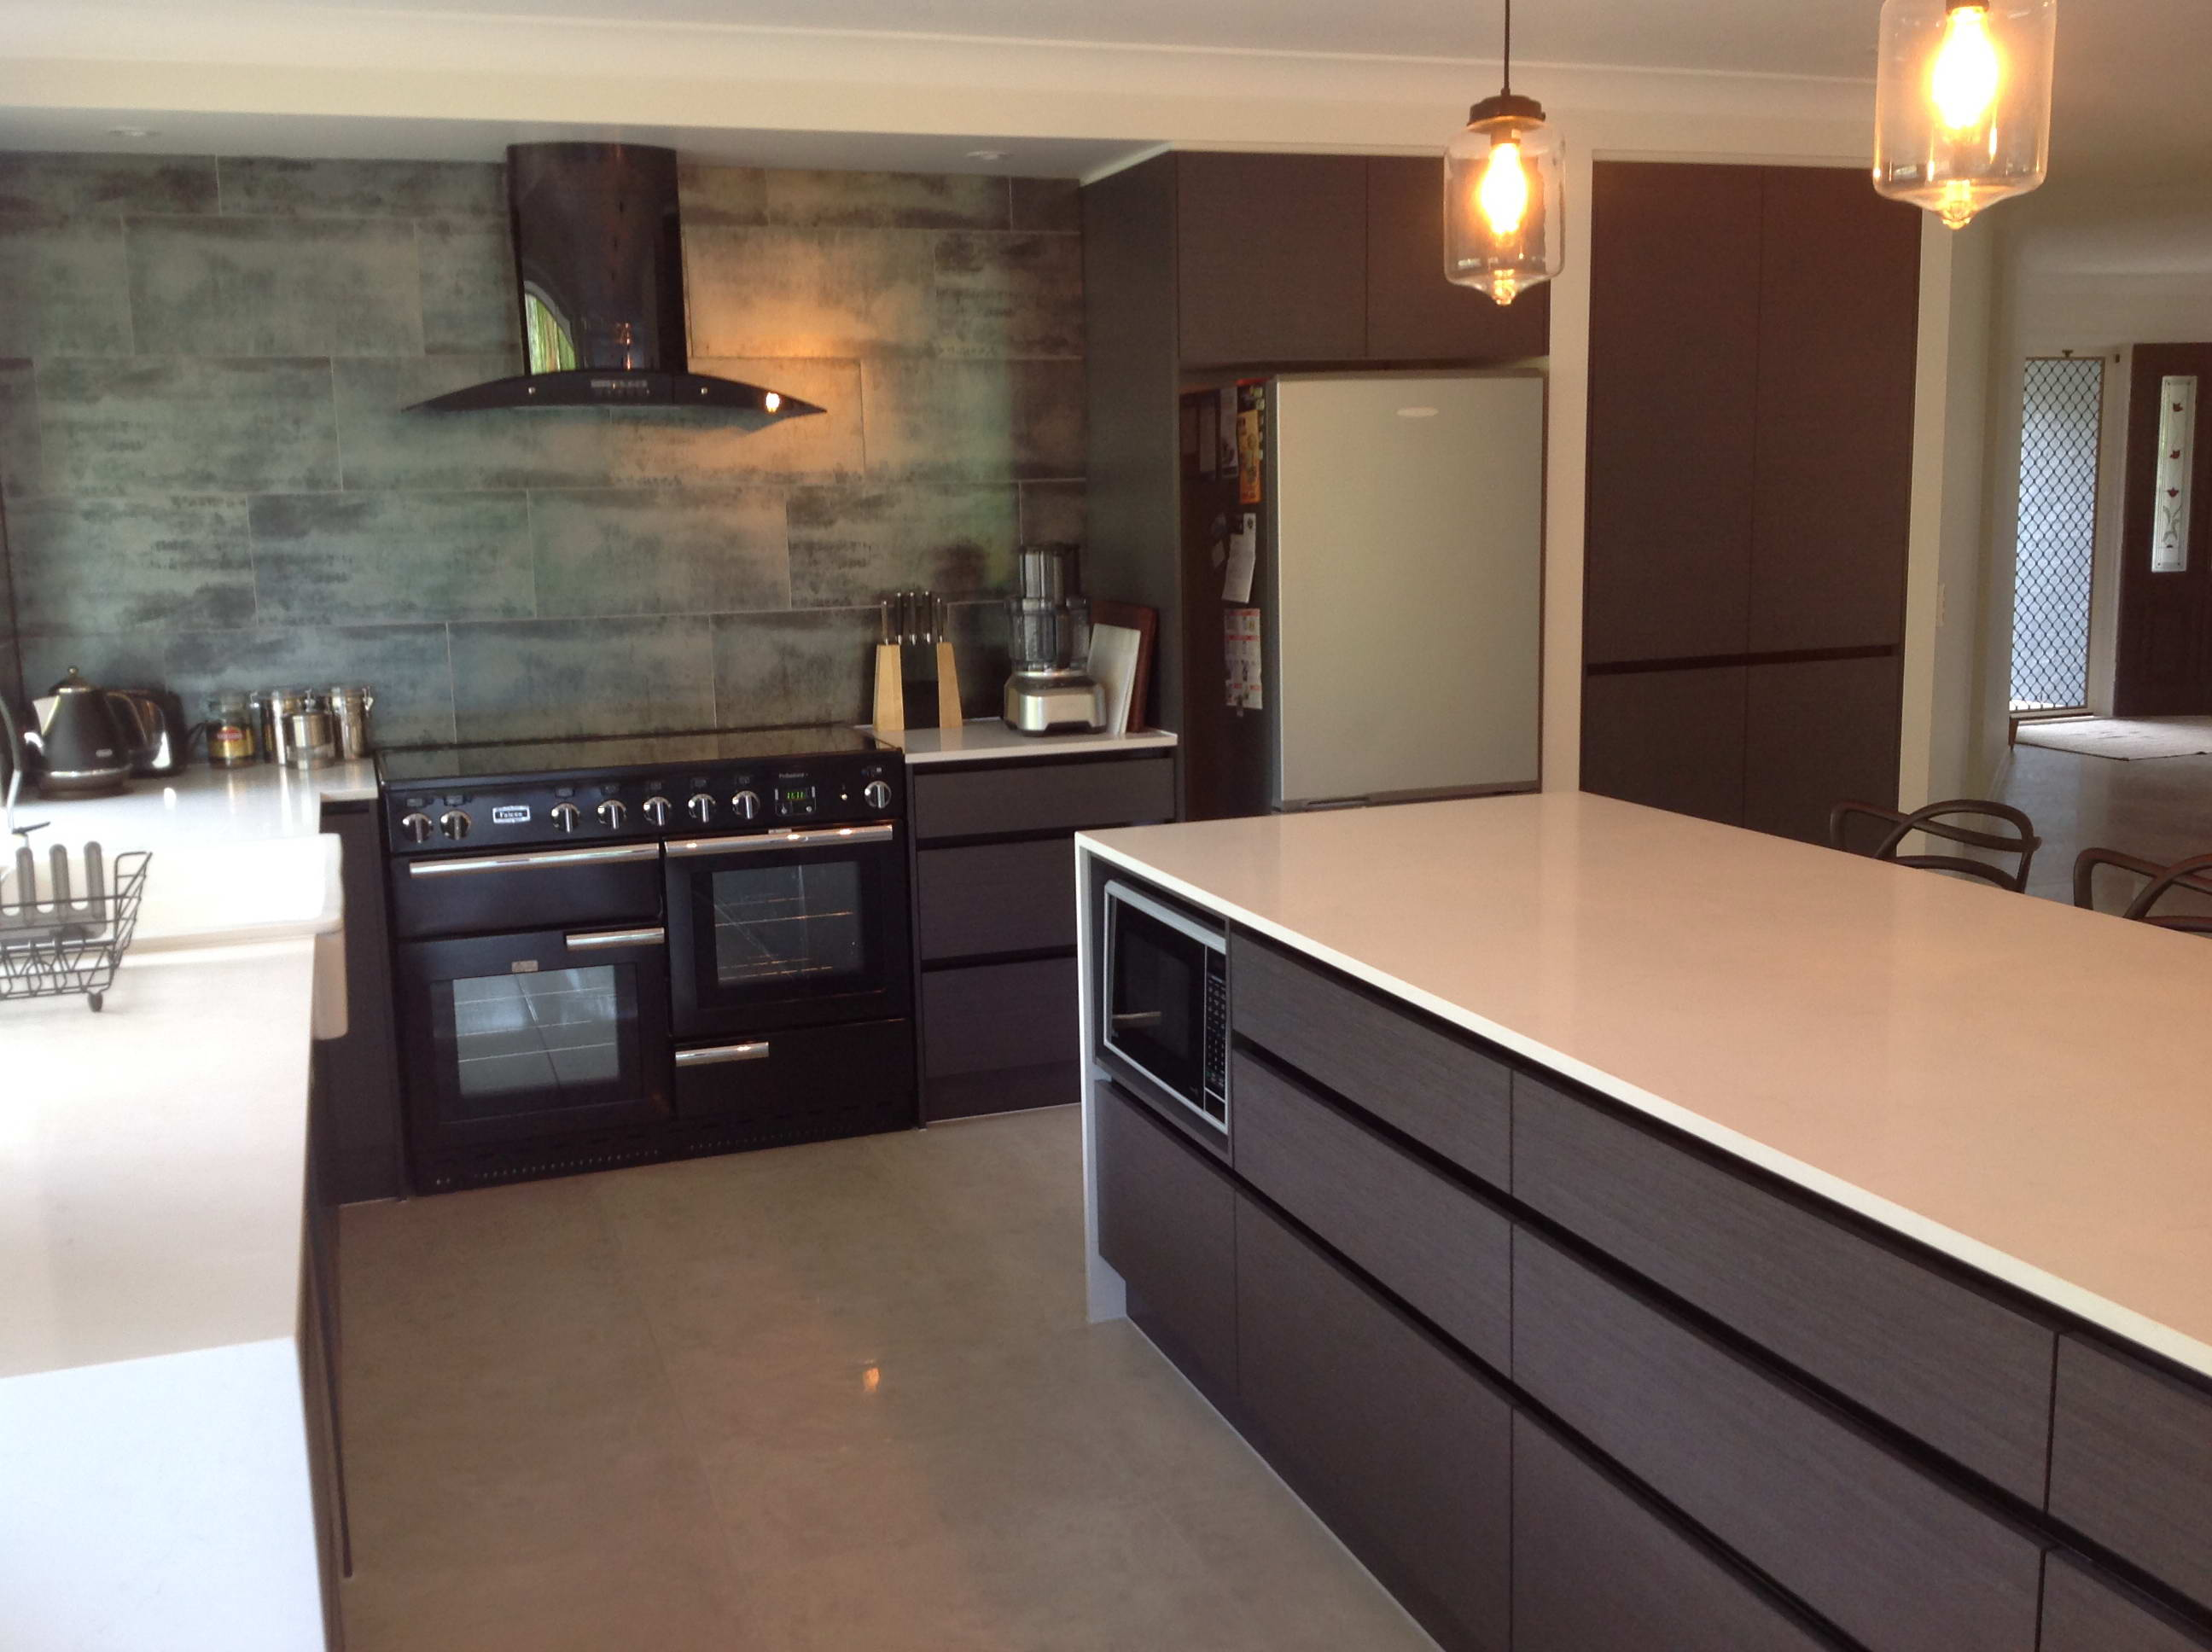 Kitchen Renovations - Gold Coast - Kitchen Brokers Queensland - Michael & Karen at Elanora